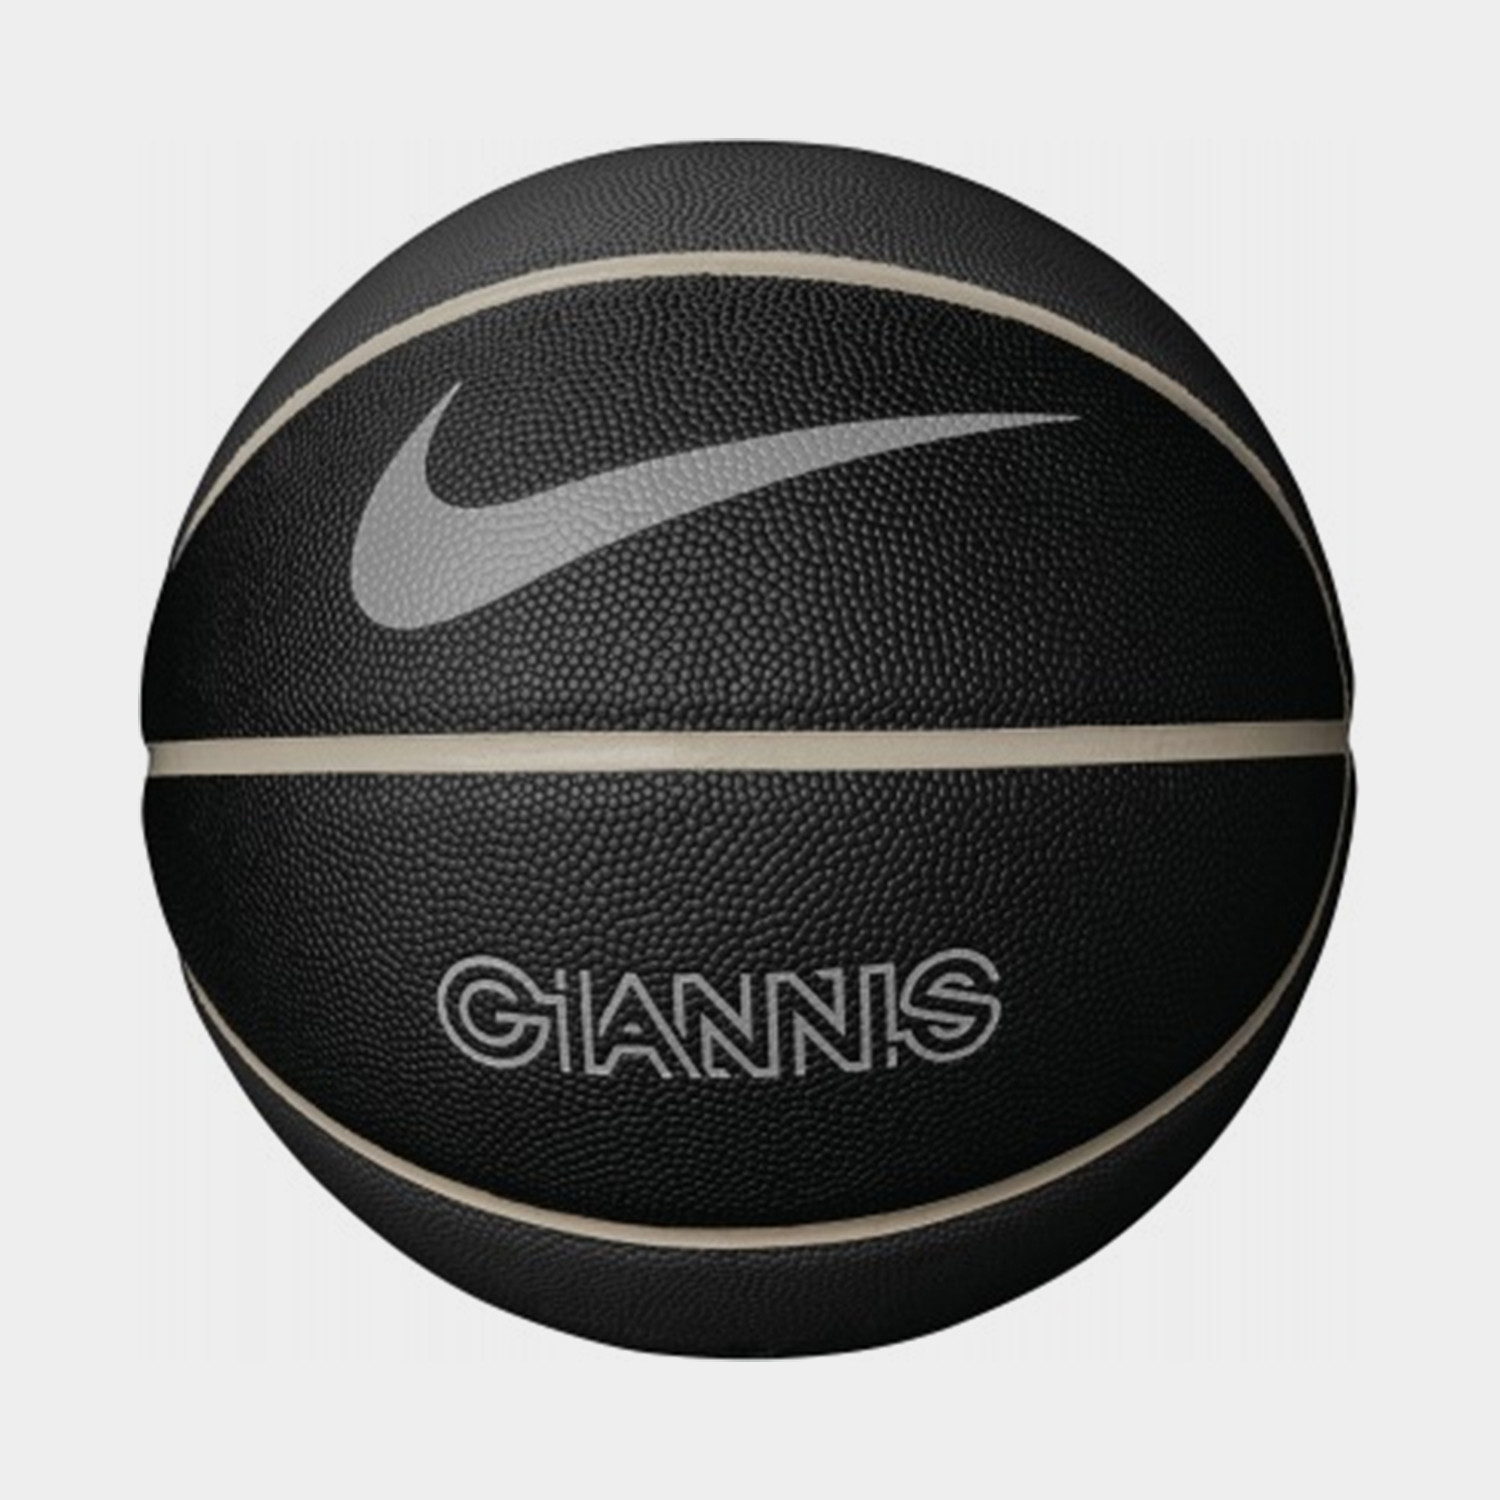 Nike Giannis All Court Μπάλα για Μπάσκετ (9000063686_48837)